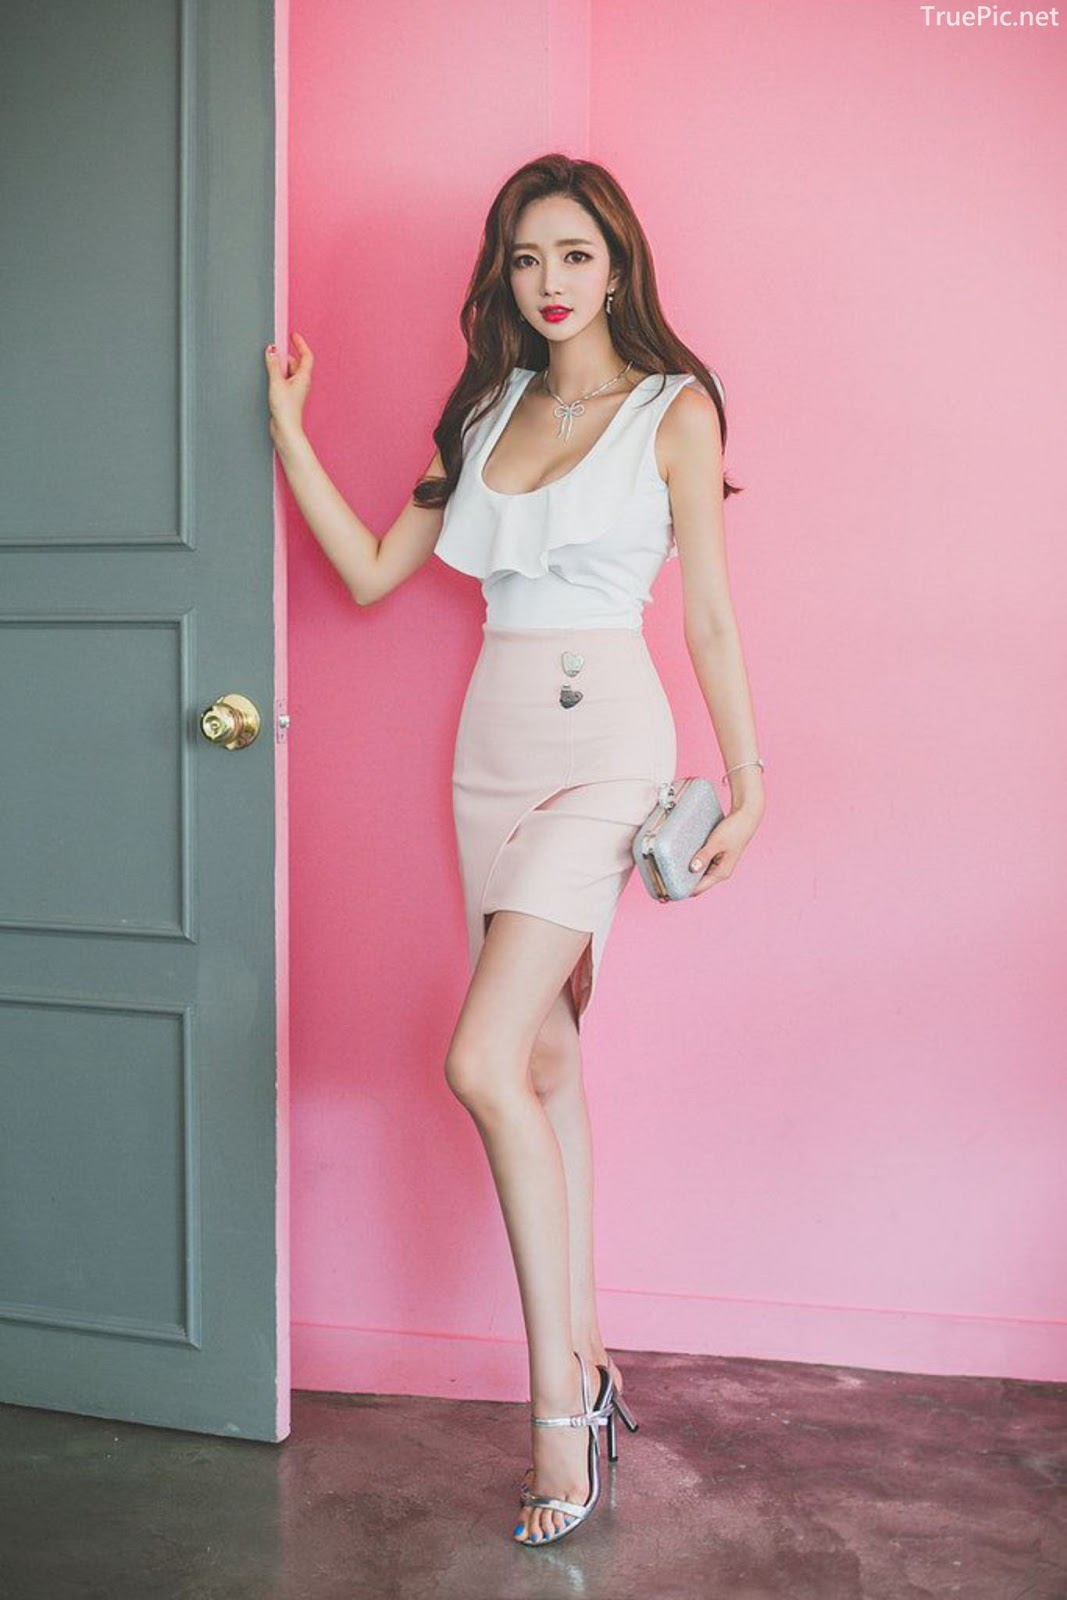 Lee Yeon Jeong - Indoor Photoshoot Collection - Korean fashion model - Part 3 - Picture 10